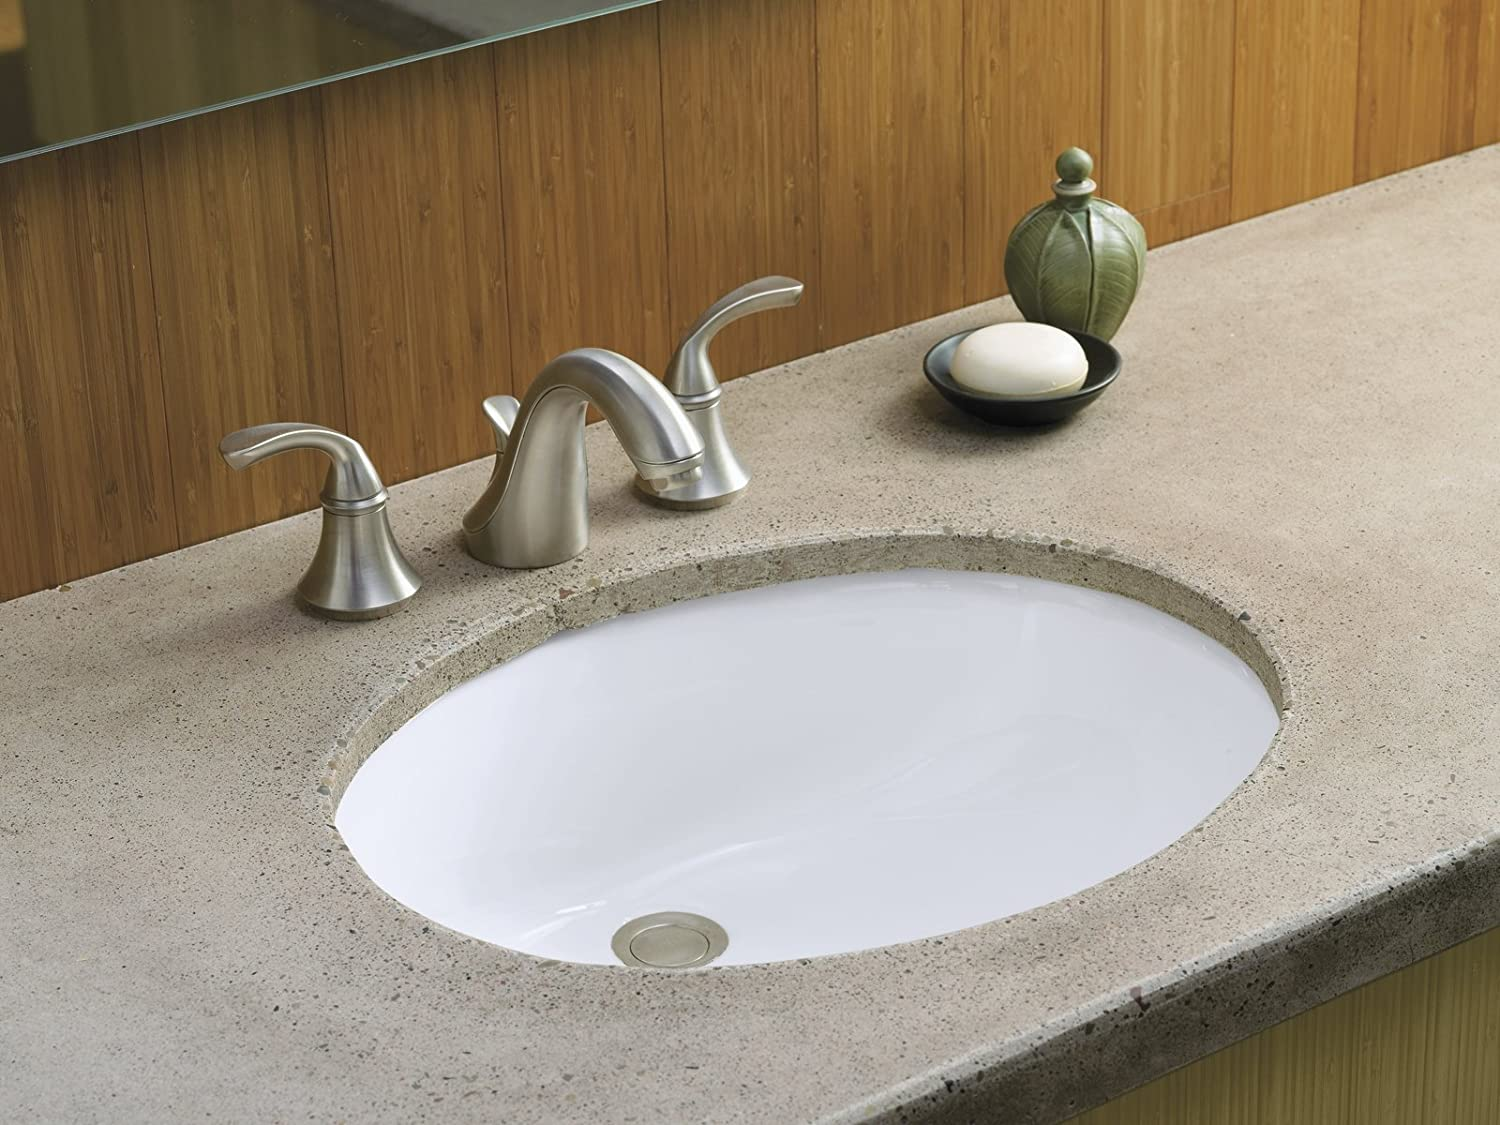 White KOHLER K-2210-0 Caxton Under-Mount Bathroom Sink